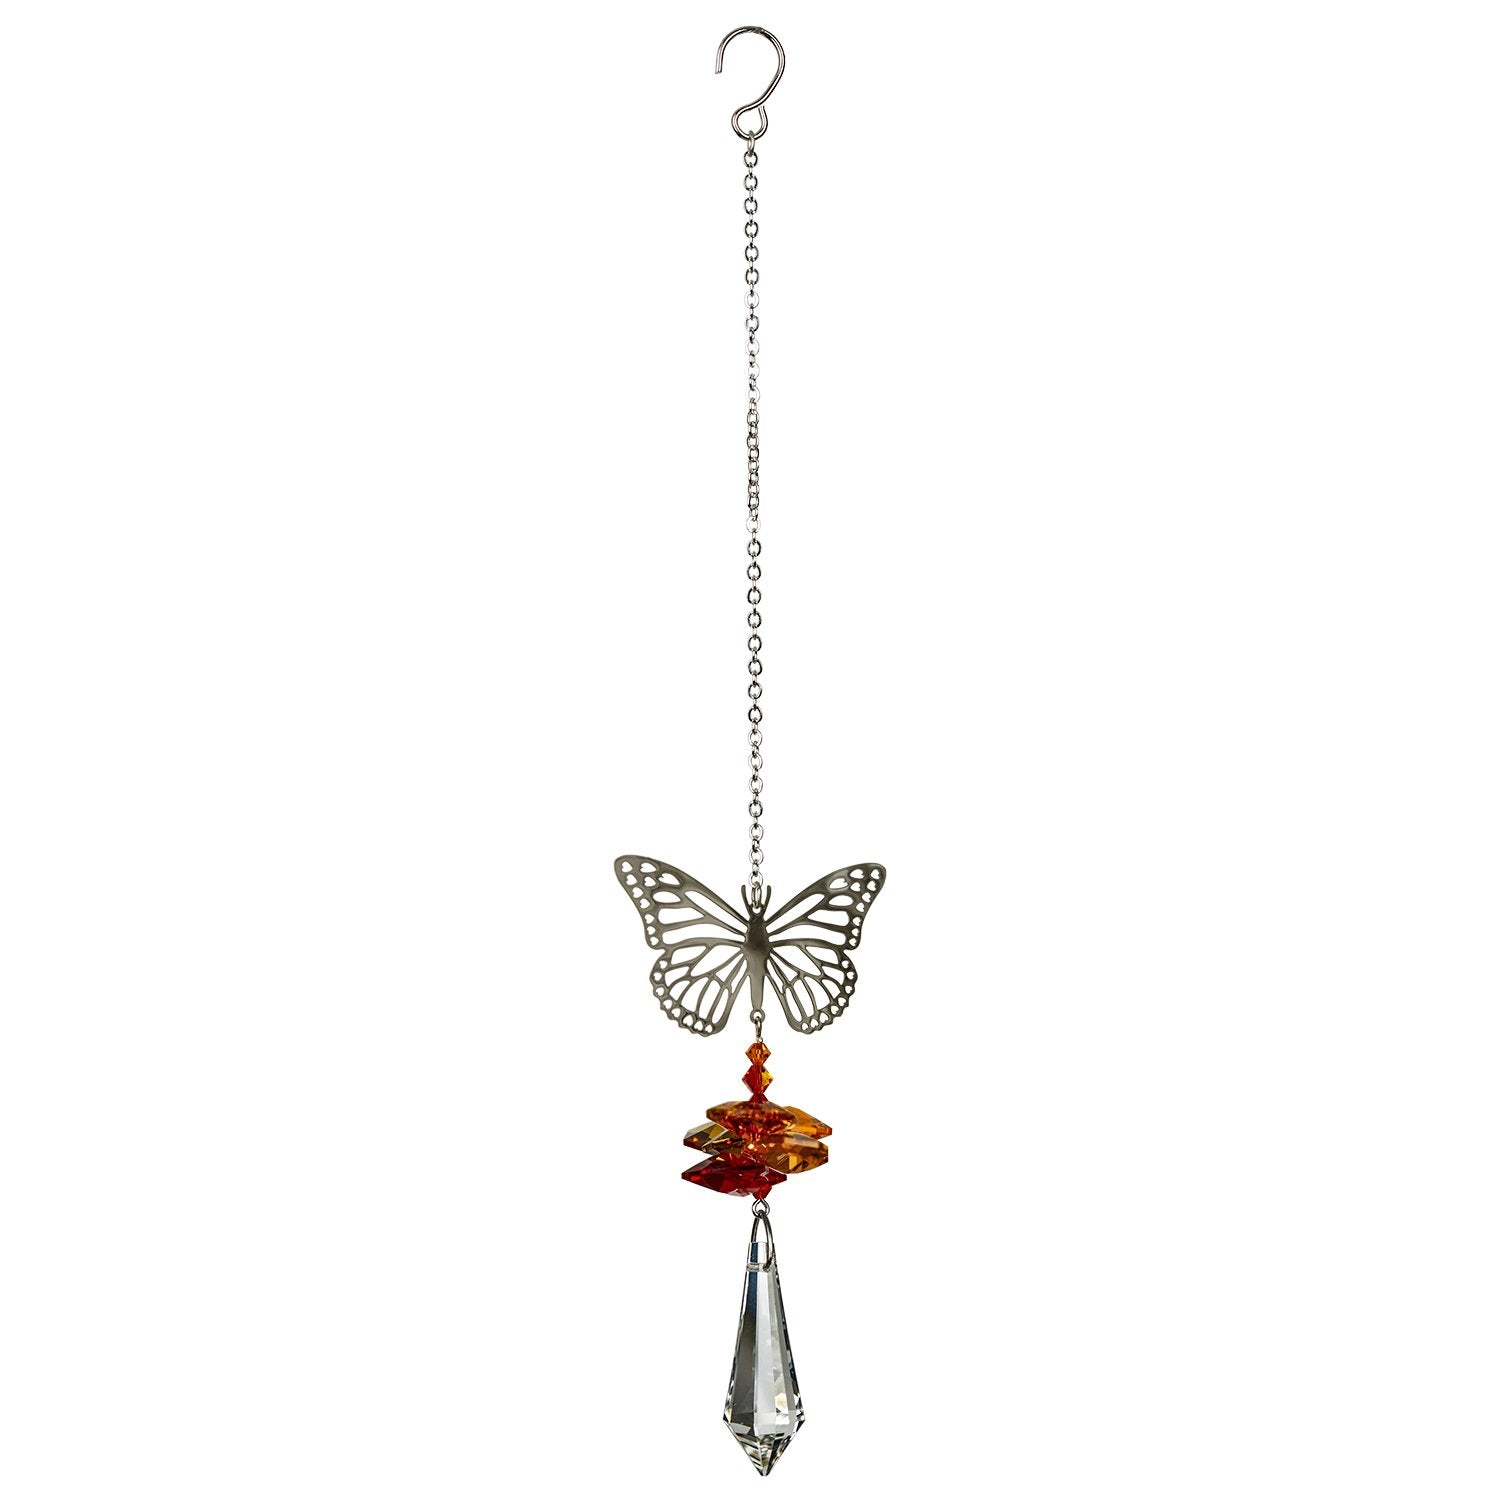 Crystal Fantasy Suncatcher - Butterfly full product image